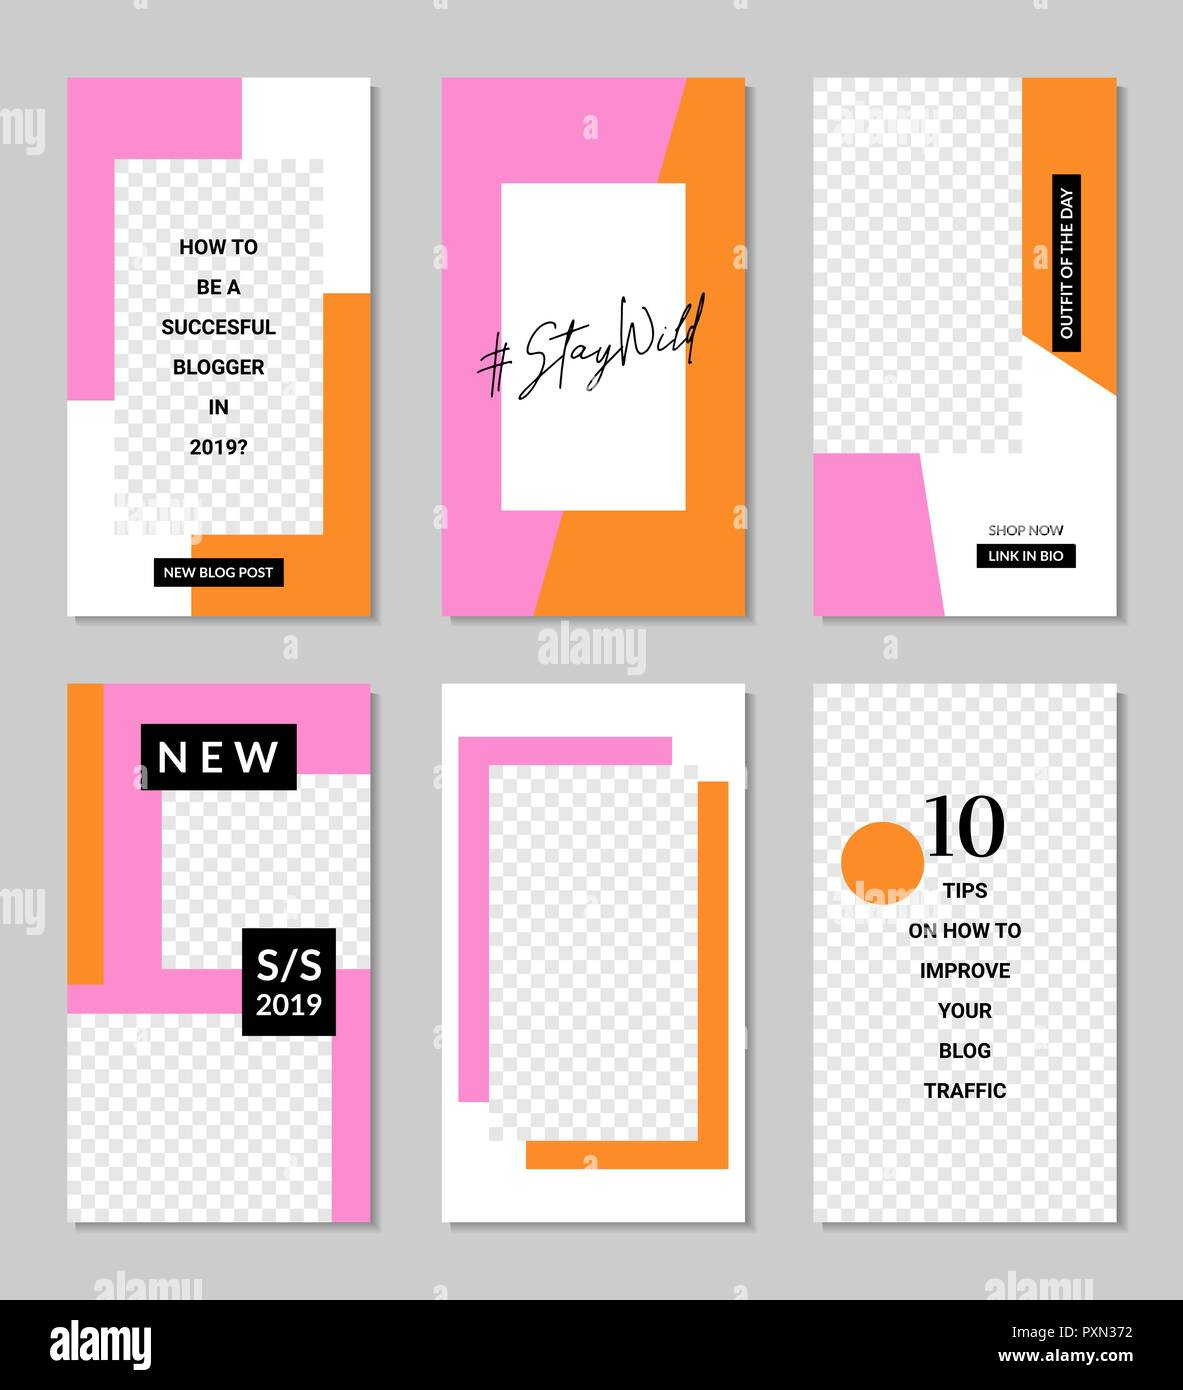 A Set Of Six Editable Vertical Templates For Social Media Posts In